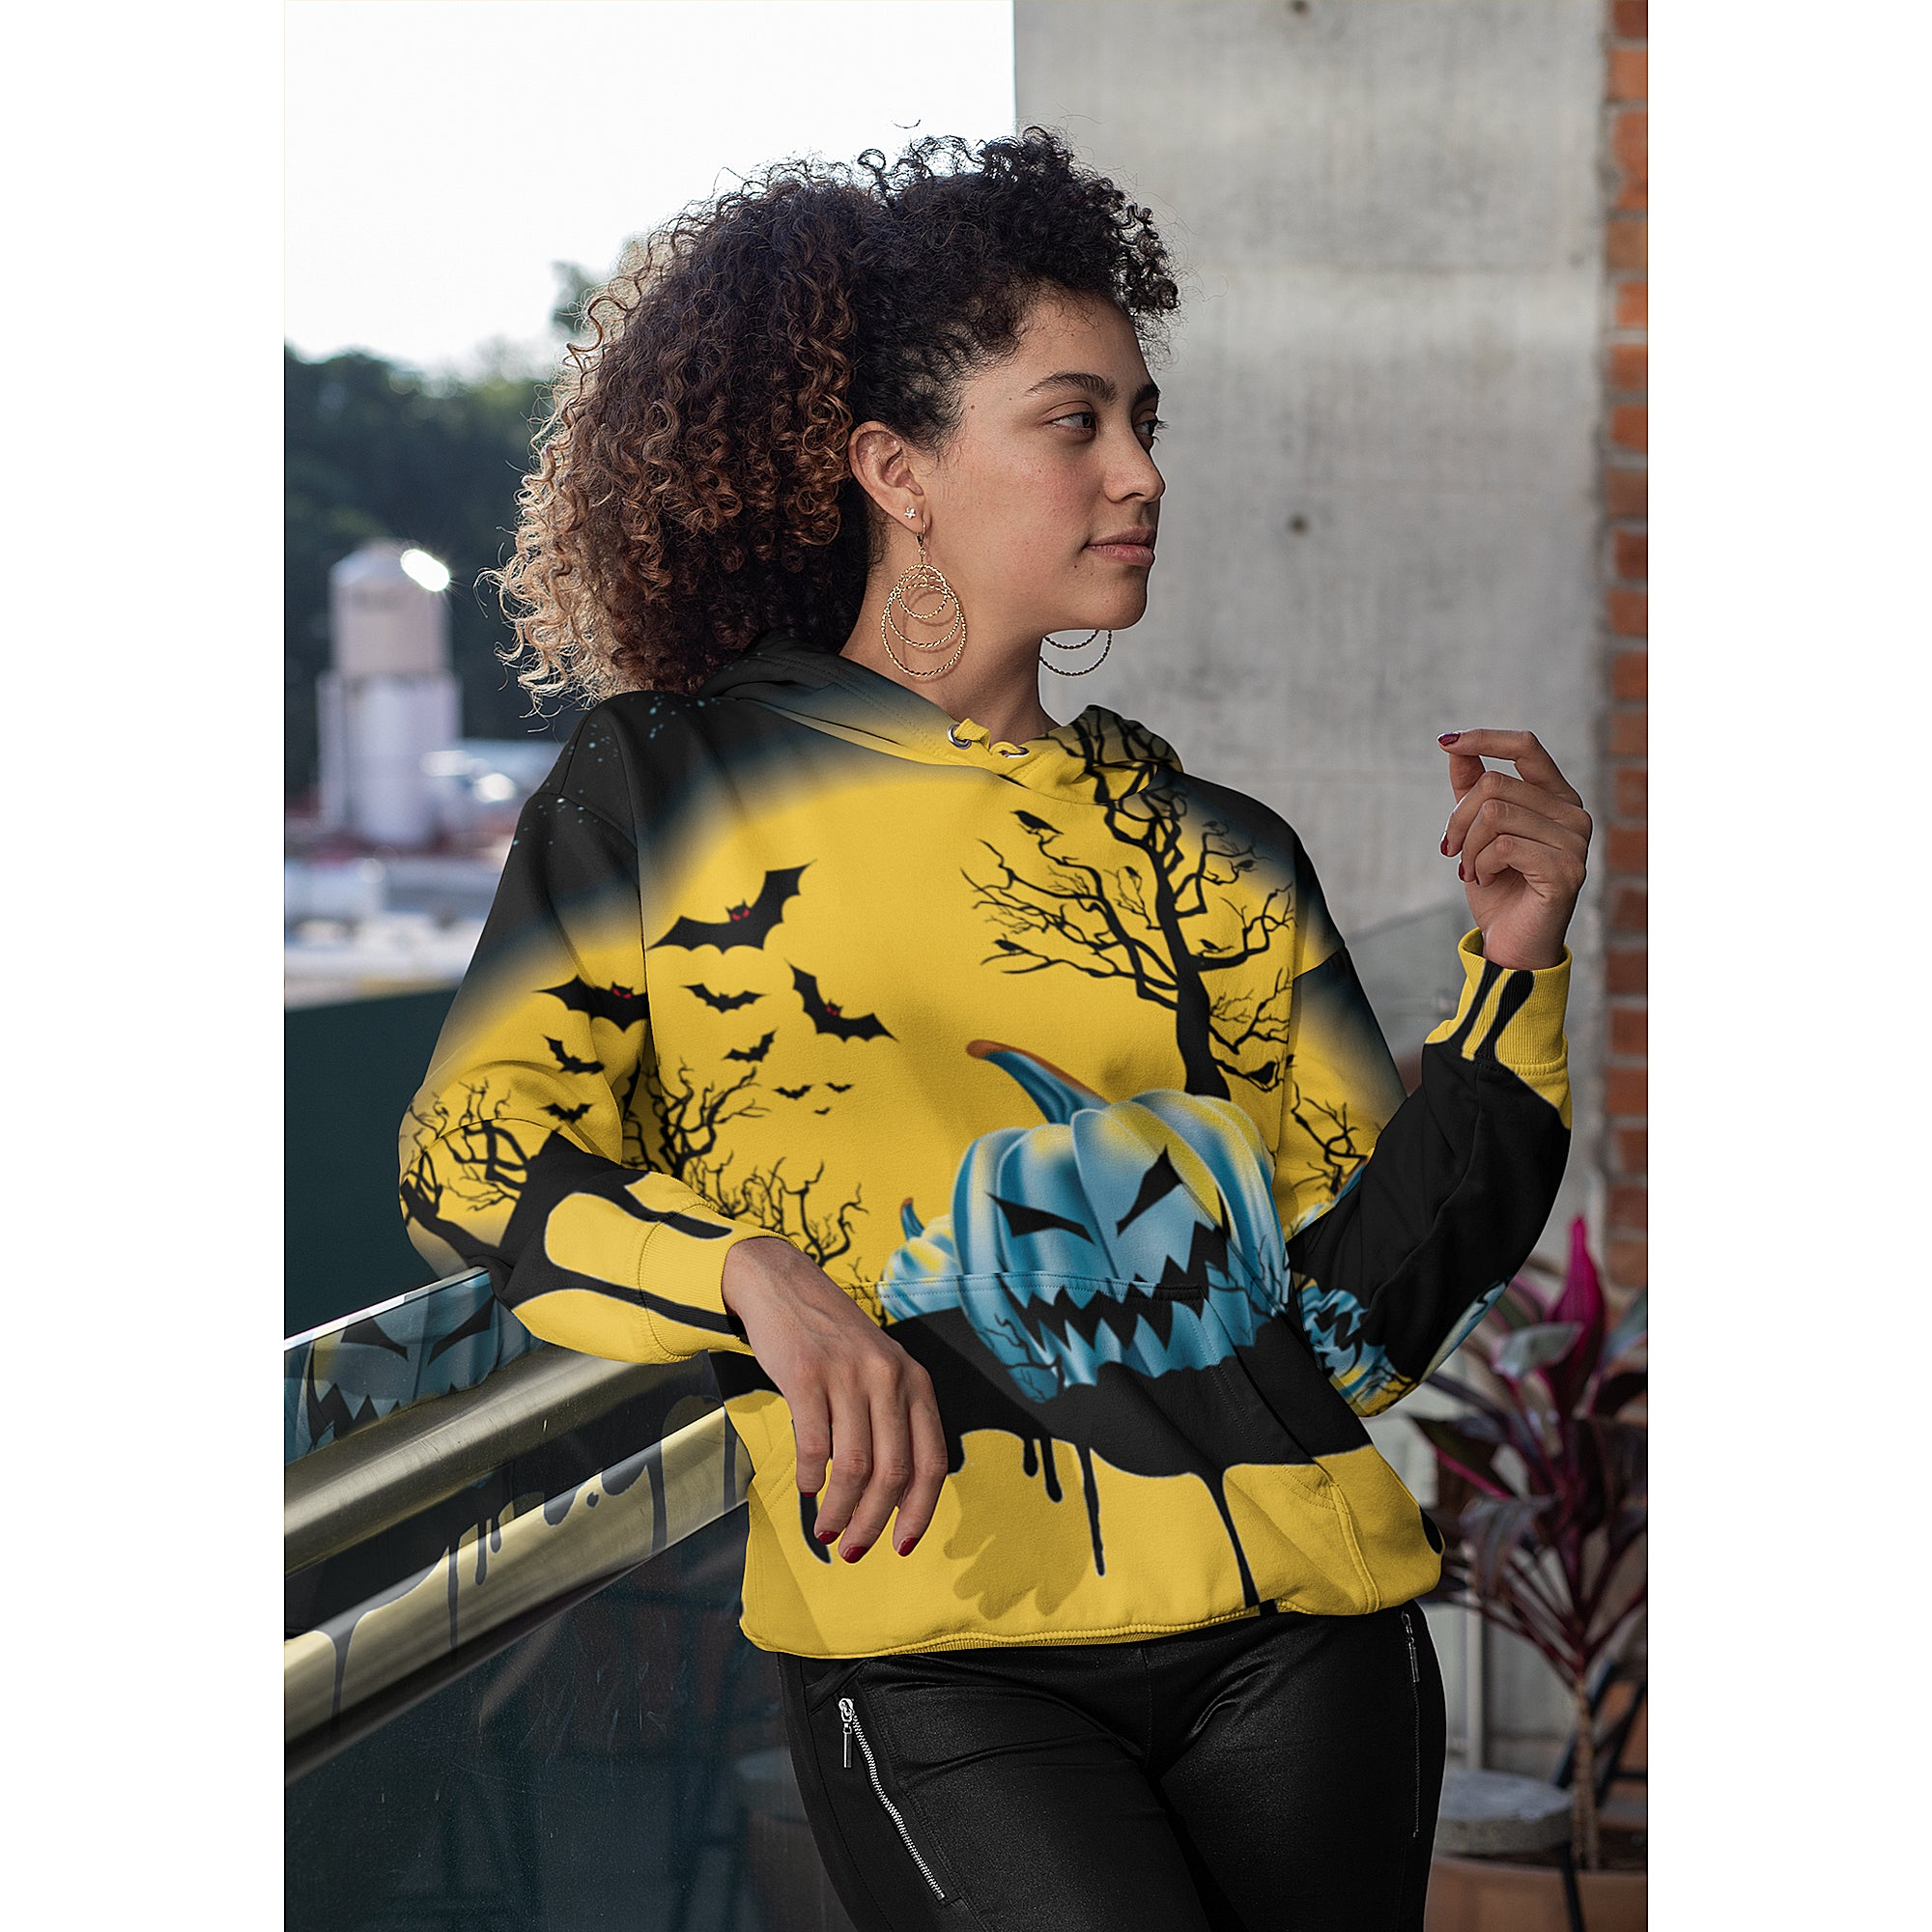 <center>* Tough * Comfortable * Classic * Feminine*<br>Candy Couture's Own Line Of<br>Plus Size Women's Leather Jackets</center>